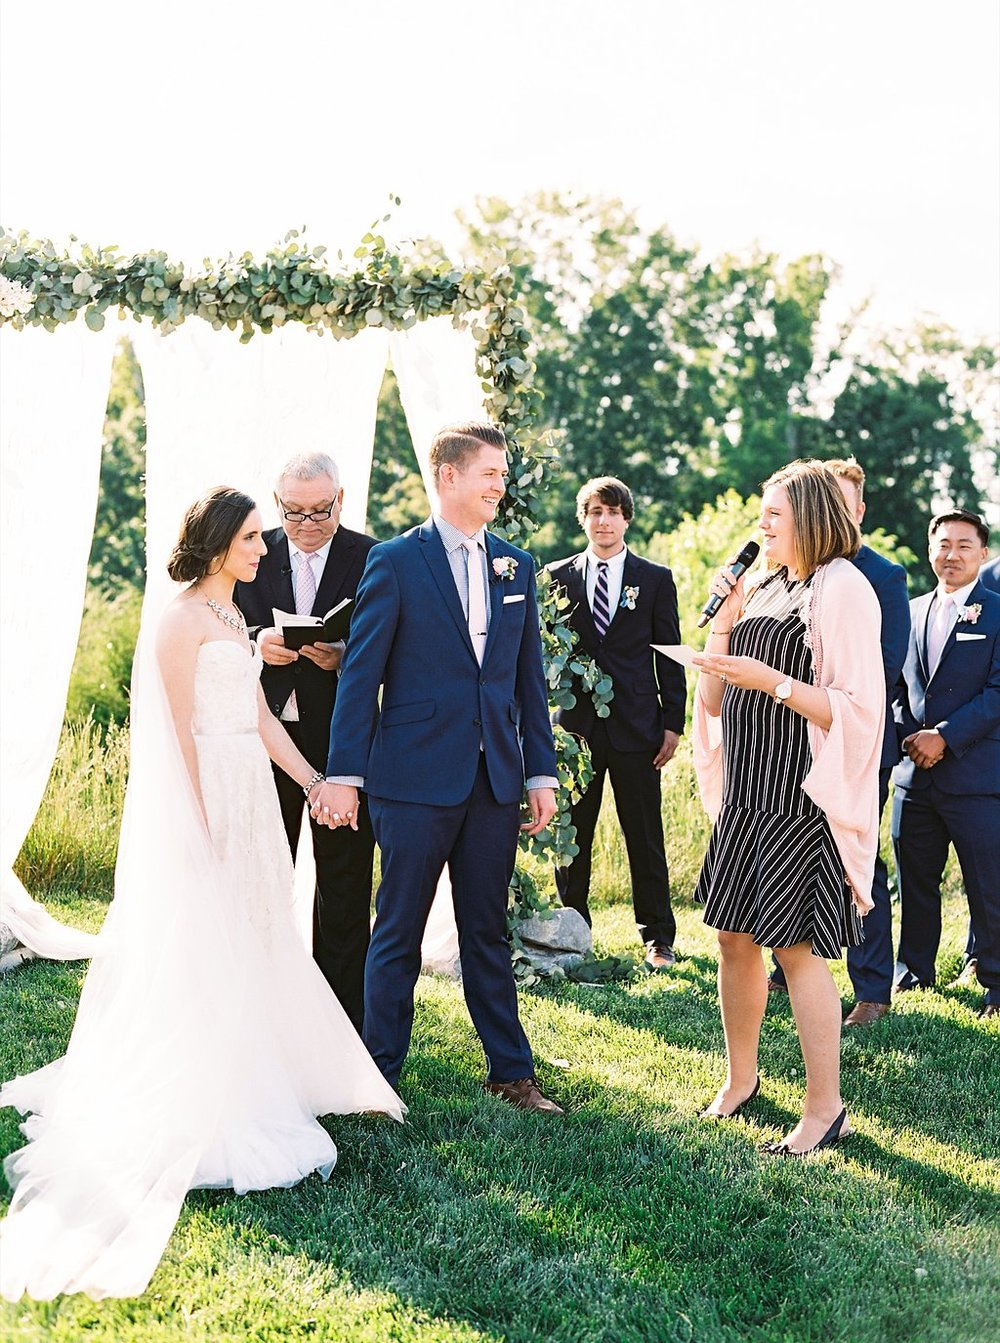 Outdoor Southern Wedding Ceremony | Blush and Navy Wedding with Fuchsia, French Blue and Gold Accents | Simply Jessica Marie's Southern Wedding | Photo by Perry Vaile Photography